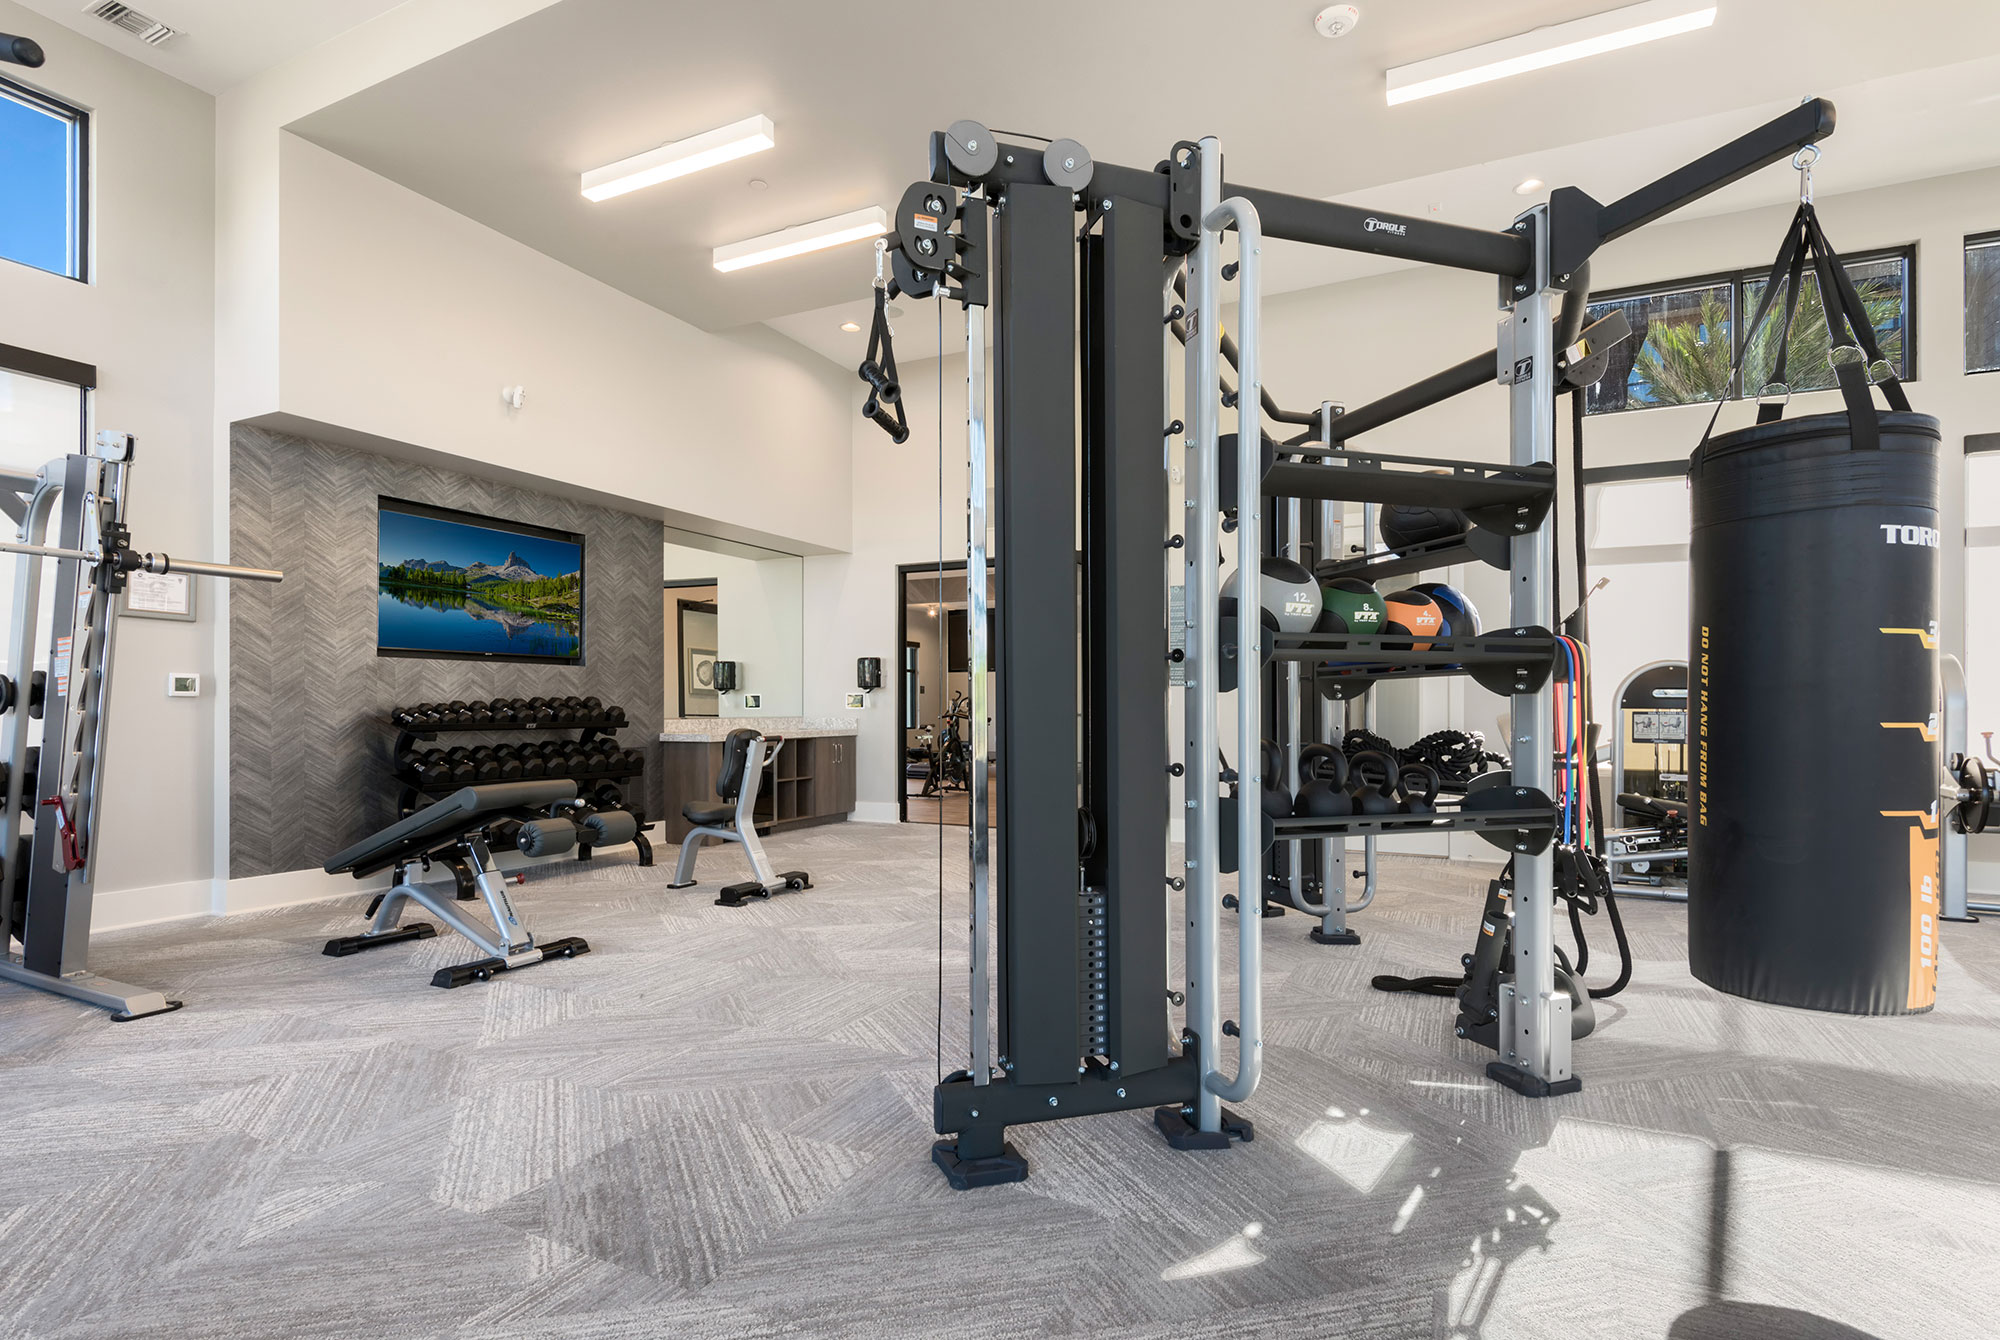 Riata - Fitness room with strength equipment